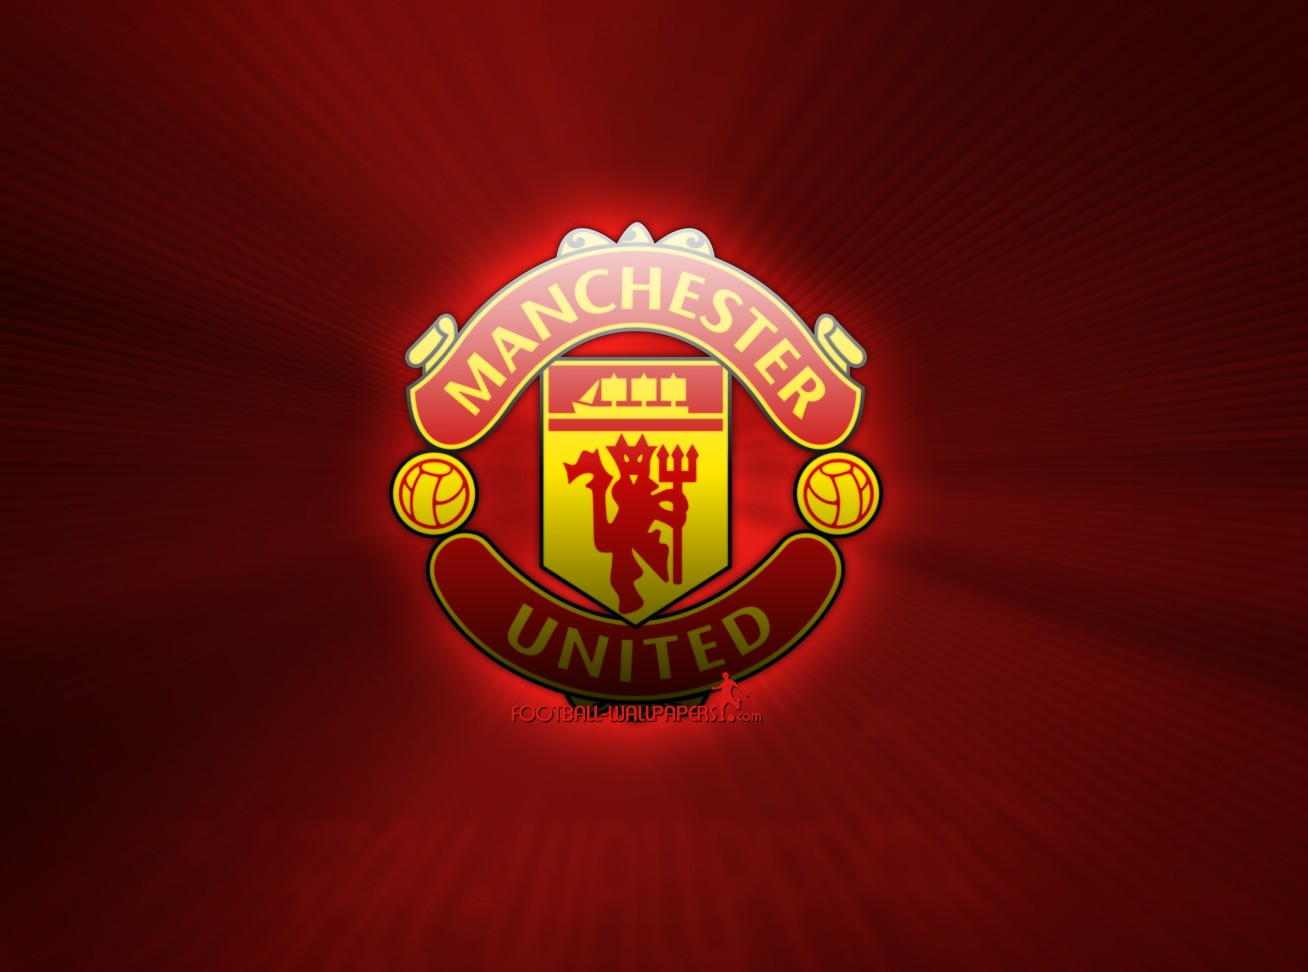 Manchester United FC Symbol Wallpaper